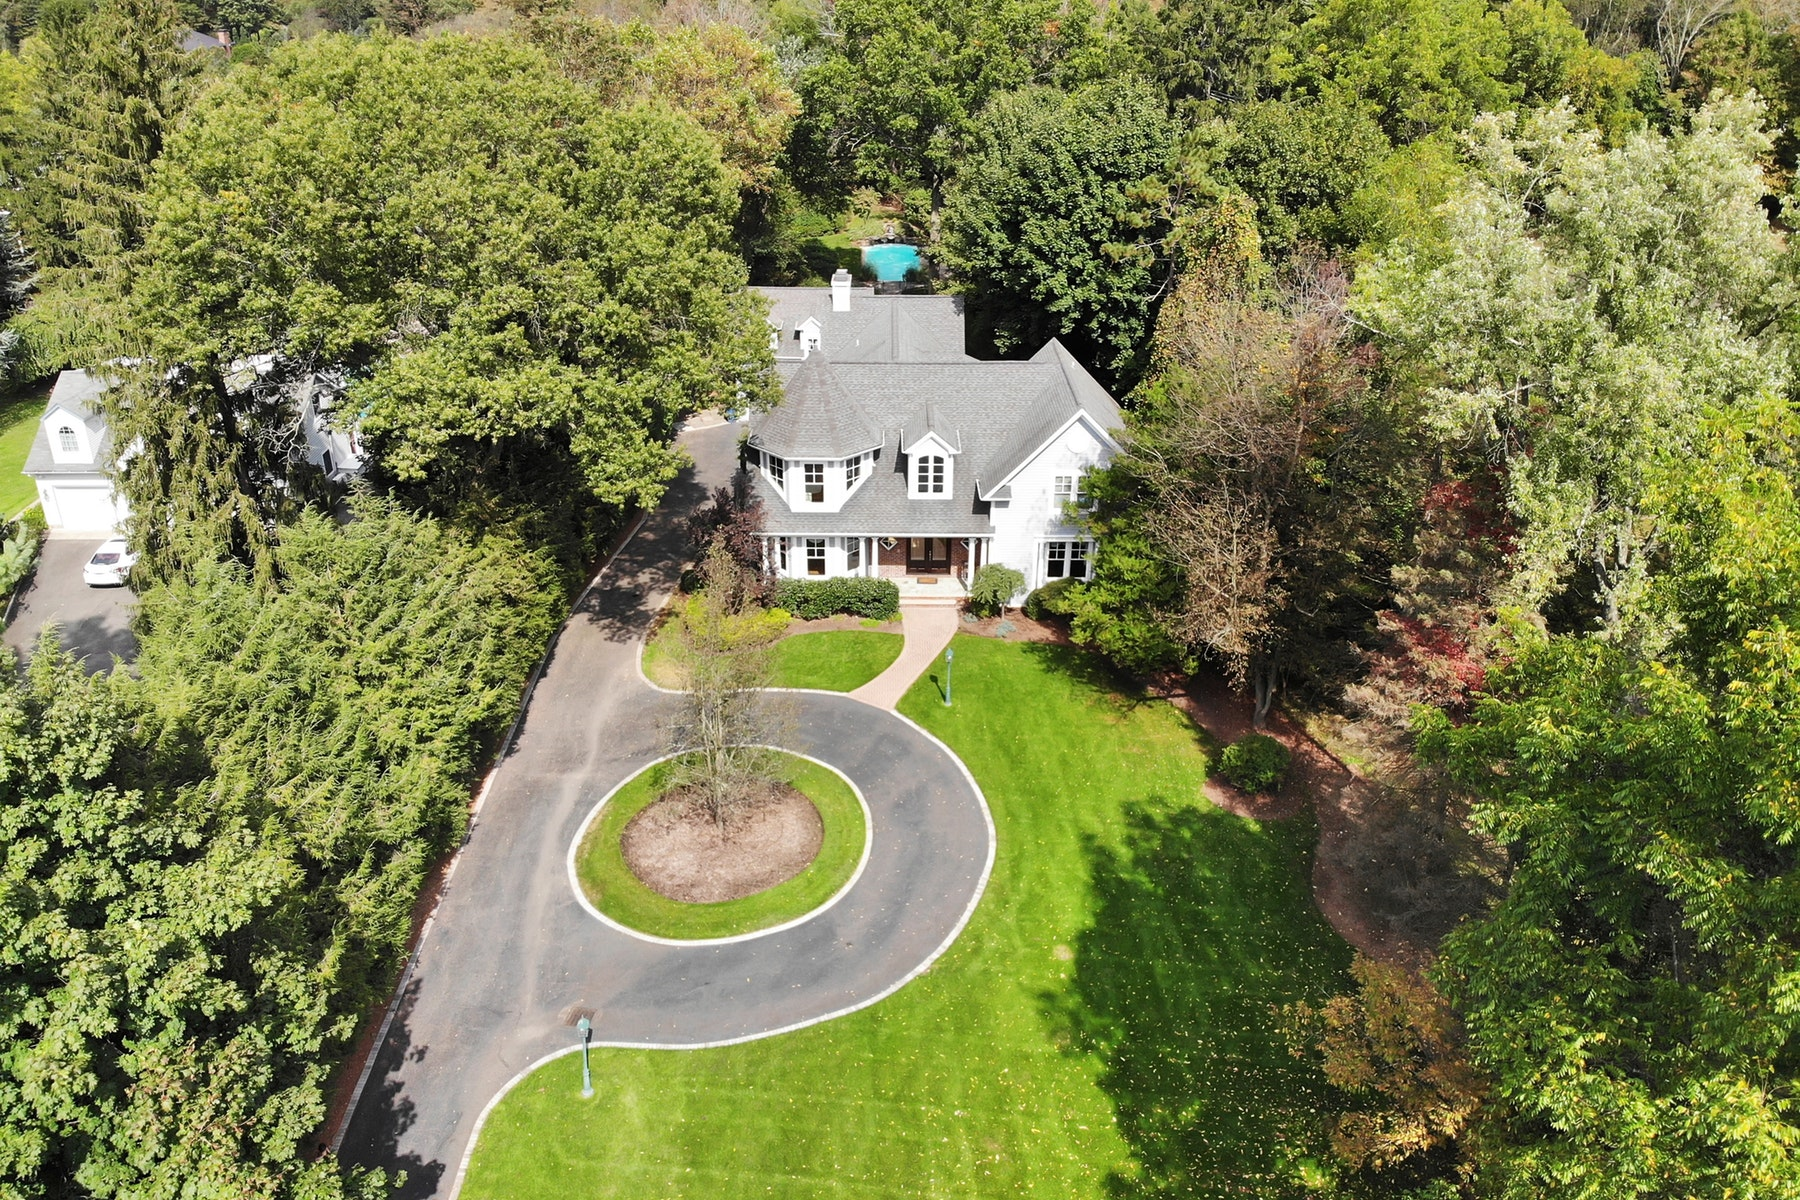 Single Family Homes for Sale at Farmhouse Style Colonial 15 Lower Cross Road Saddle River, New Jersey 07458 United States